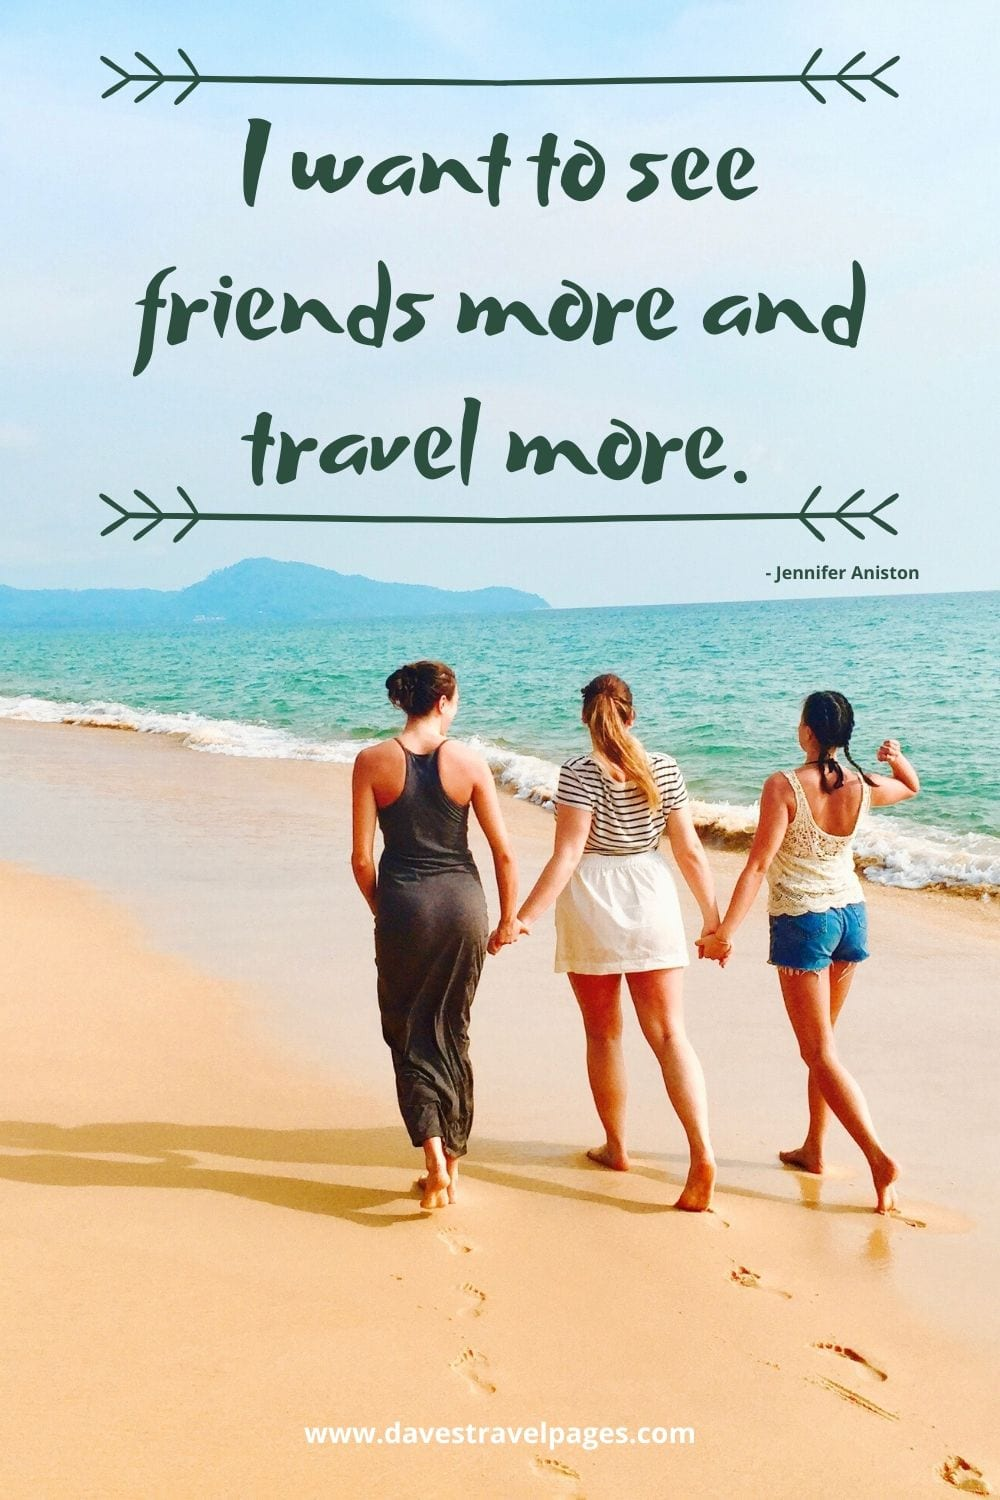 Funny travel quote: I want to see friends more and travel more. Jennifer Aniston